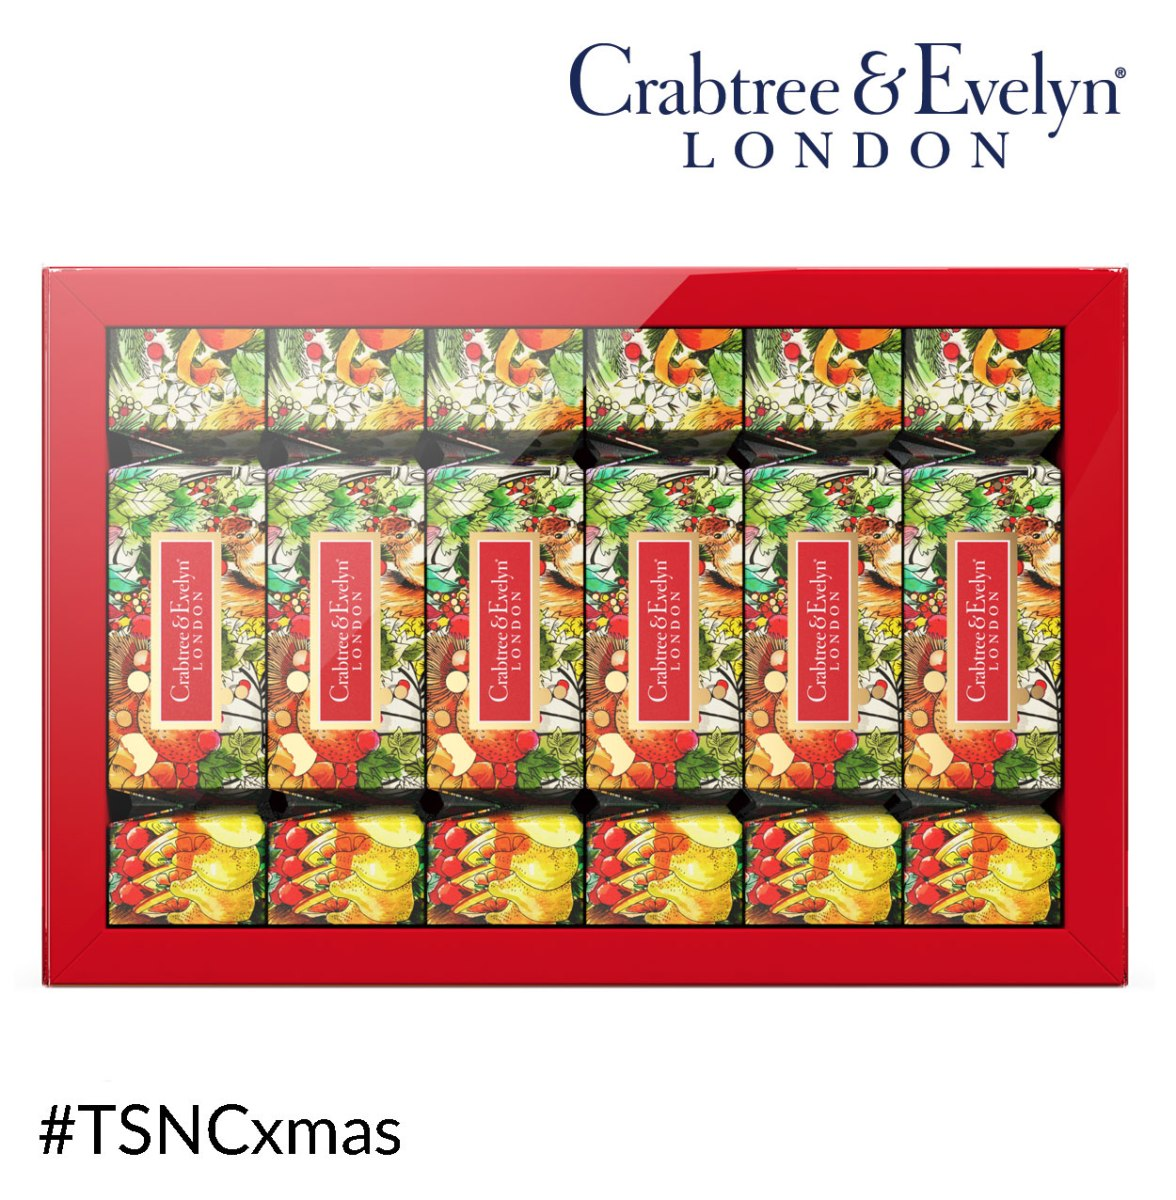 TSNC Advent Giveaway: Crabtree & Evelyn! #TSNCxmas